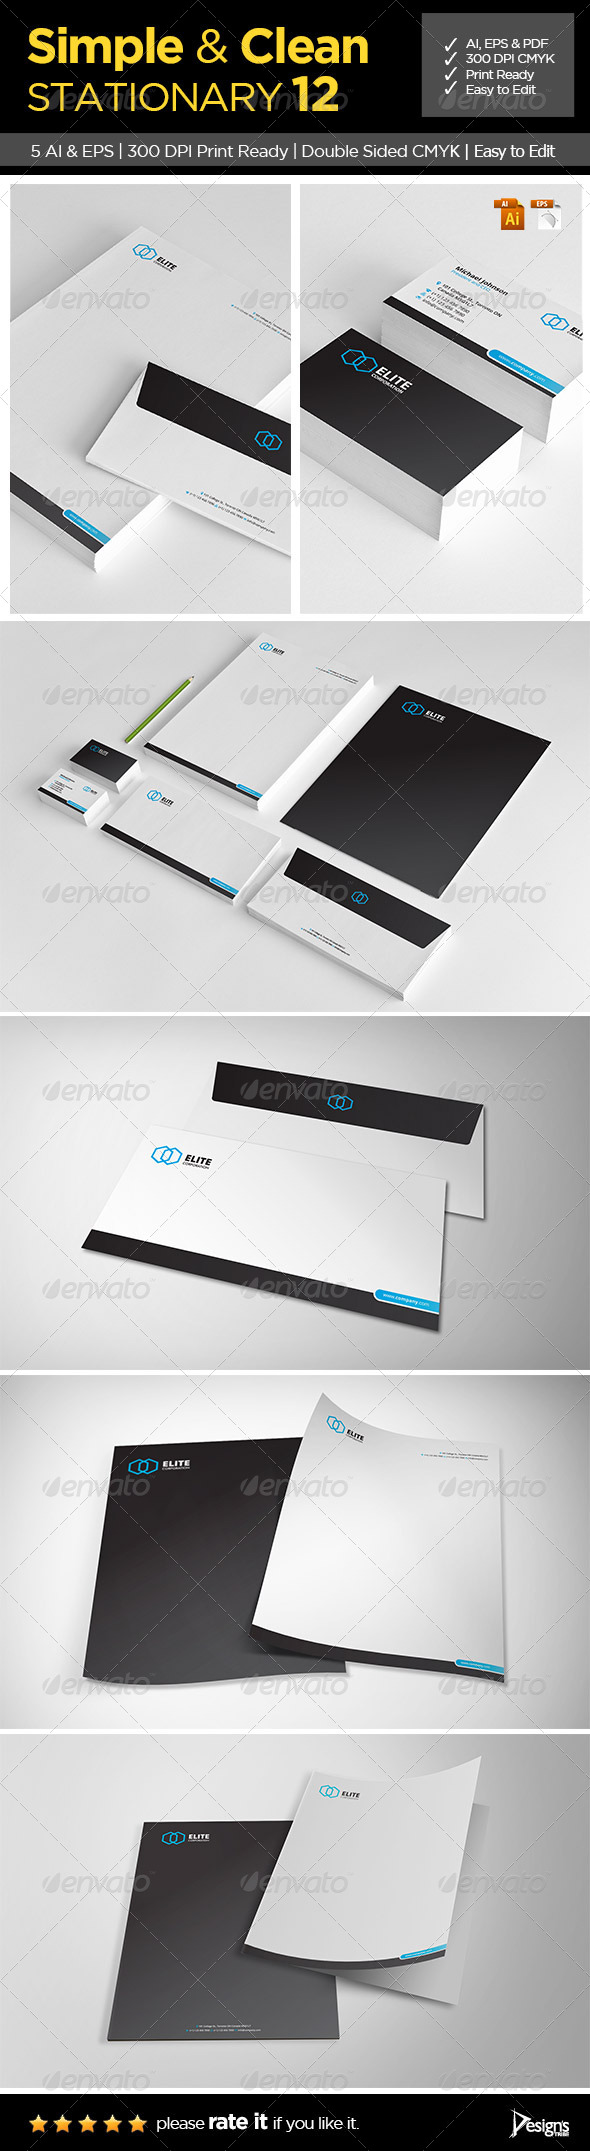 Simple and Clean Stationary 12 - Stationery Print Templates